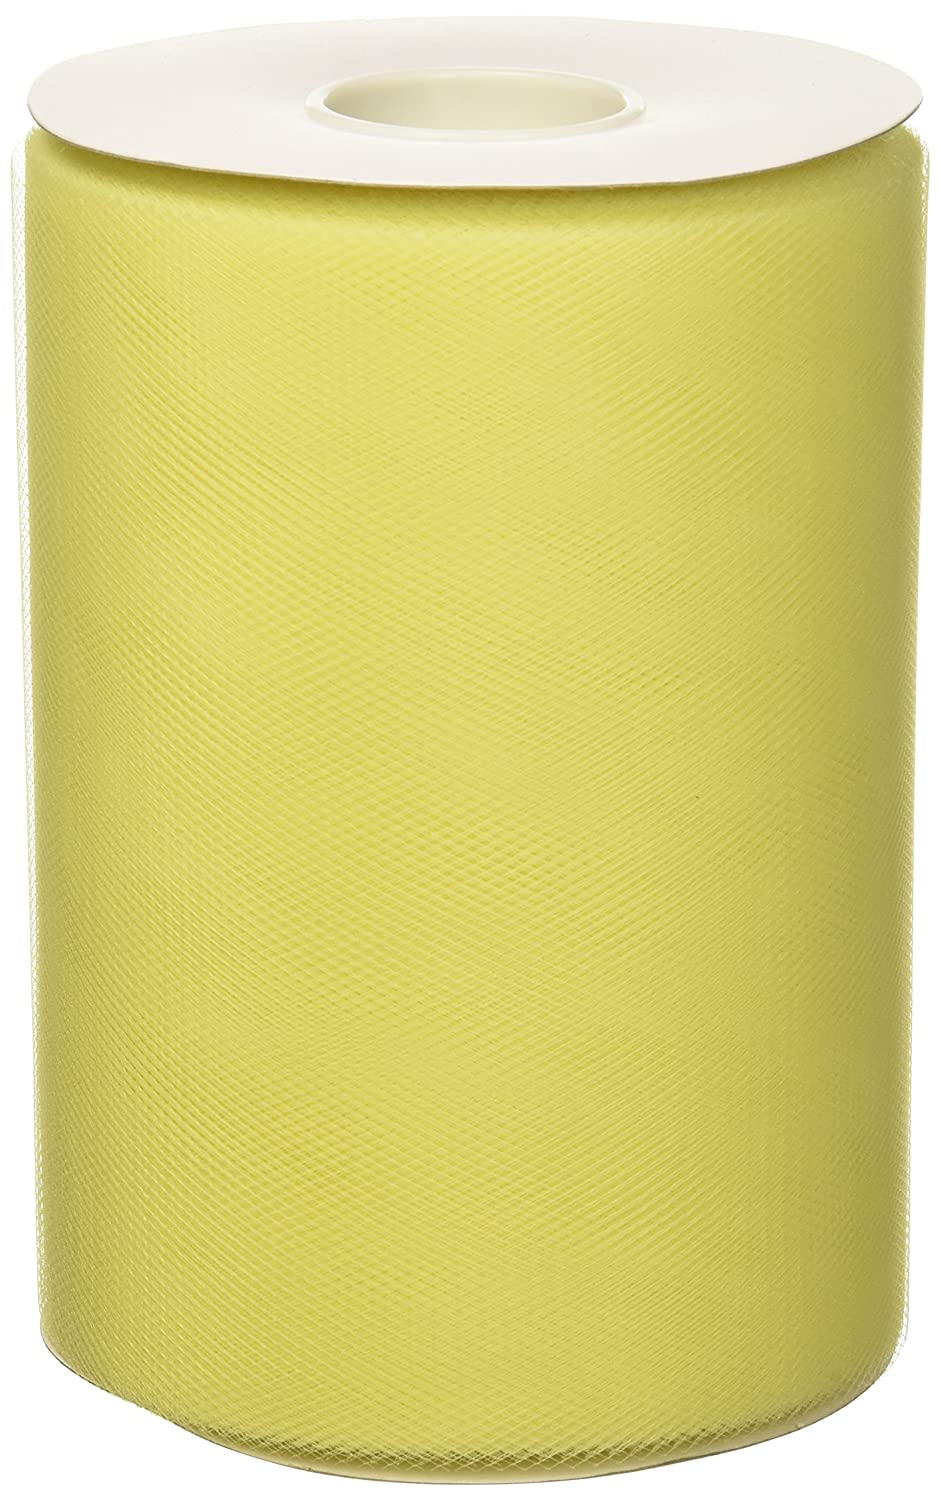 BBCrafts Baby Maize Polyester Tulle Roll 6 inch 100 Yards by BBCrafts B0071UWUVY